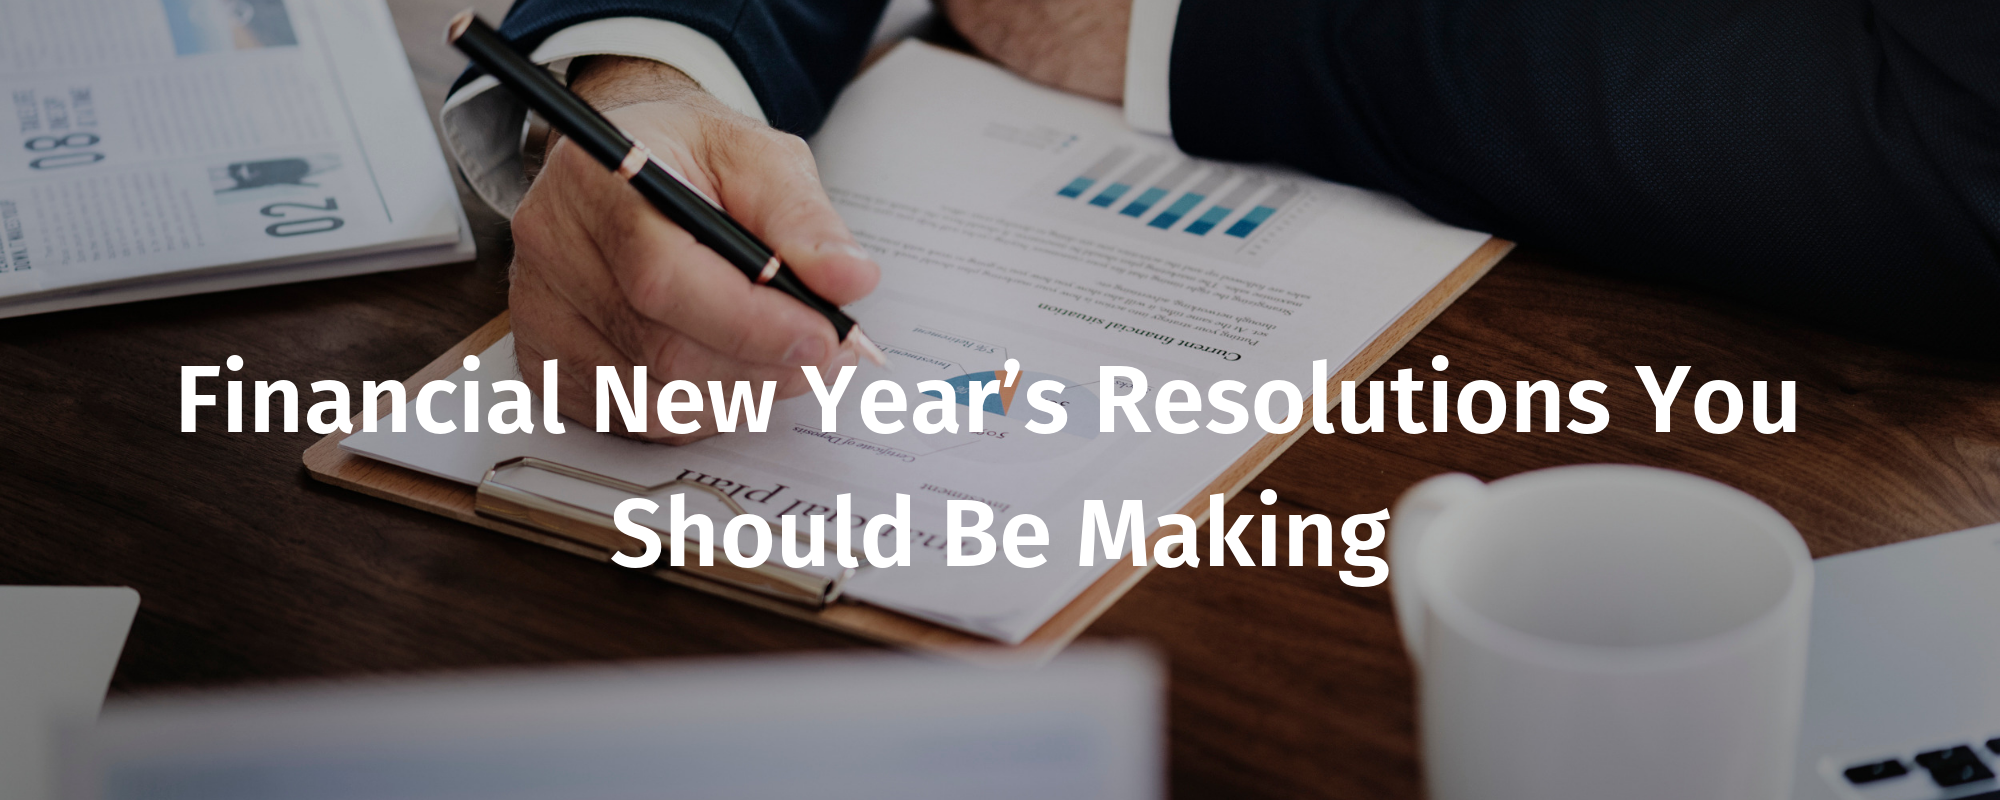 Financial New Year's Resolutions You Should Be Making